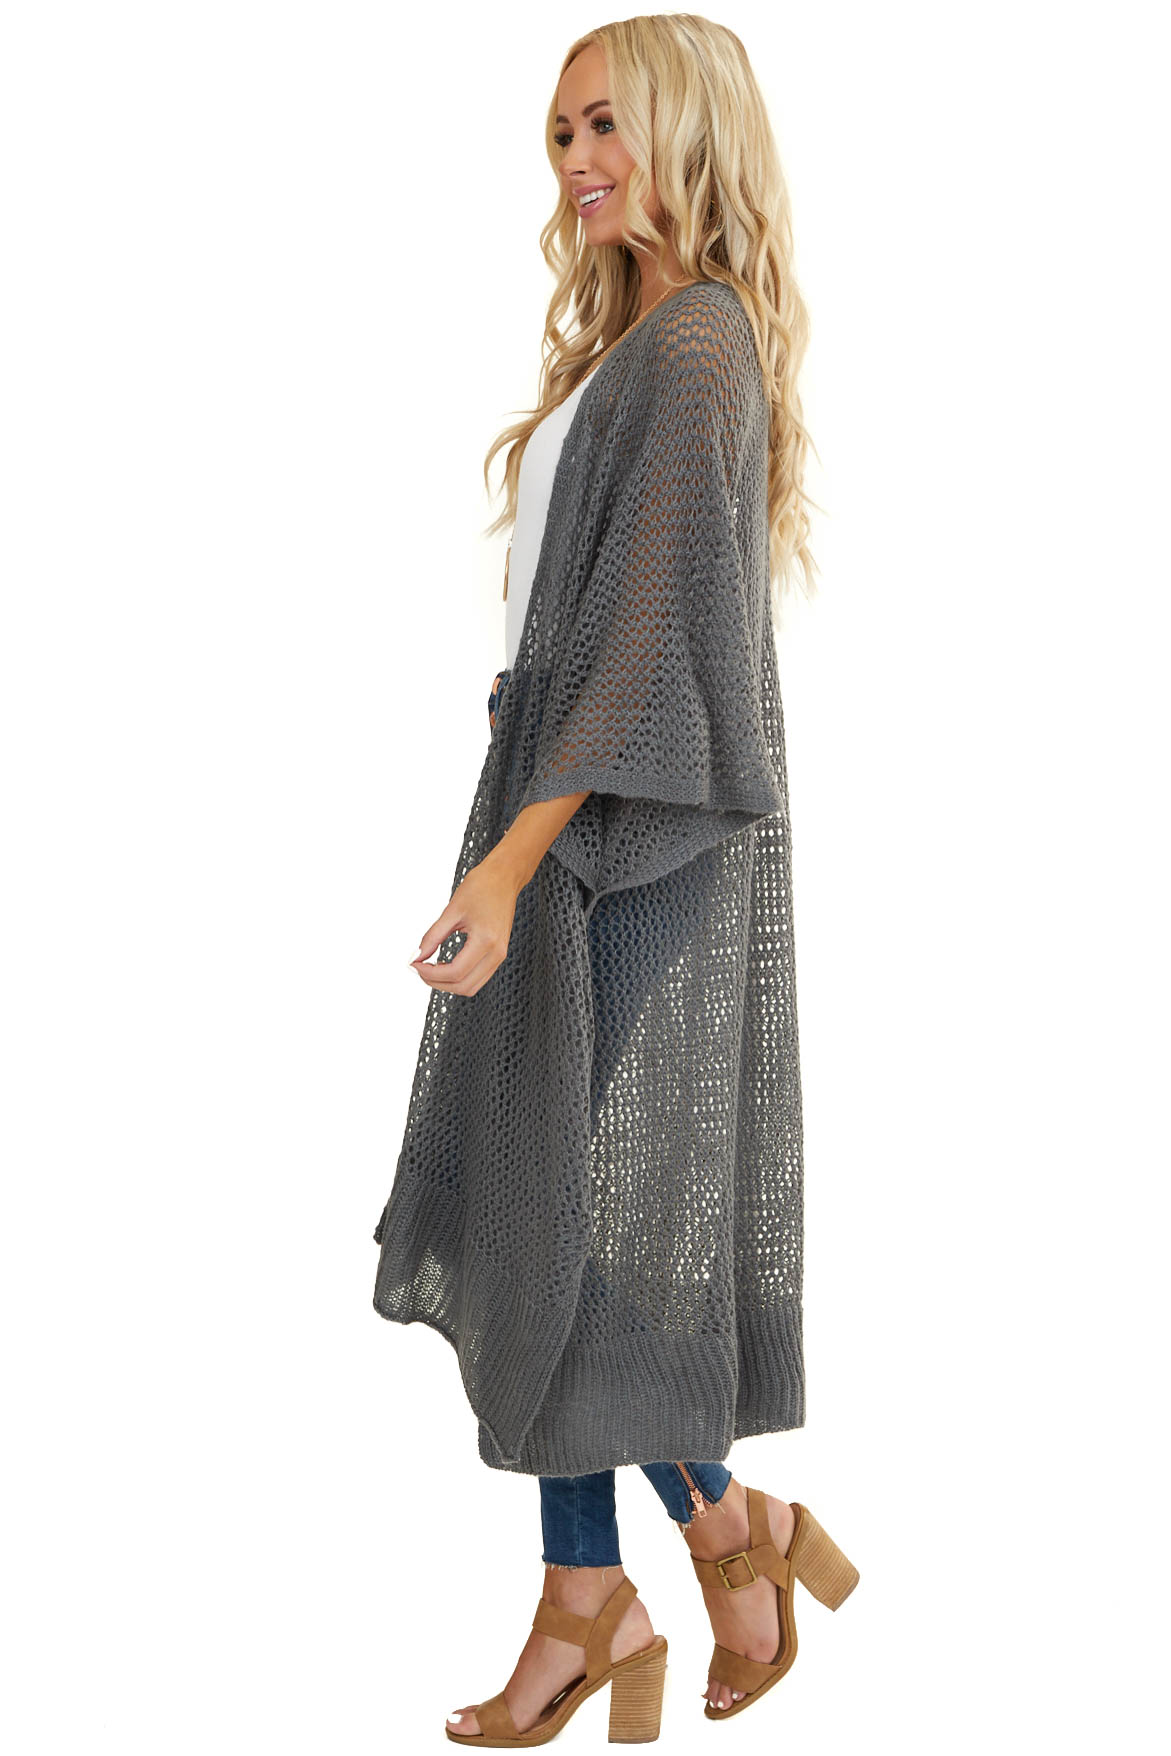 Stone Grey Loose Knit Open Front Cardigan with Half Sleeves